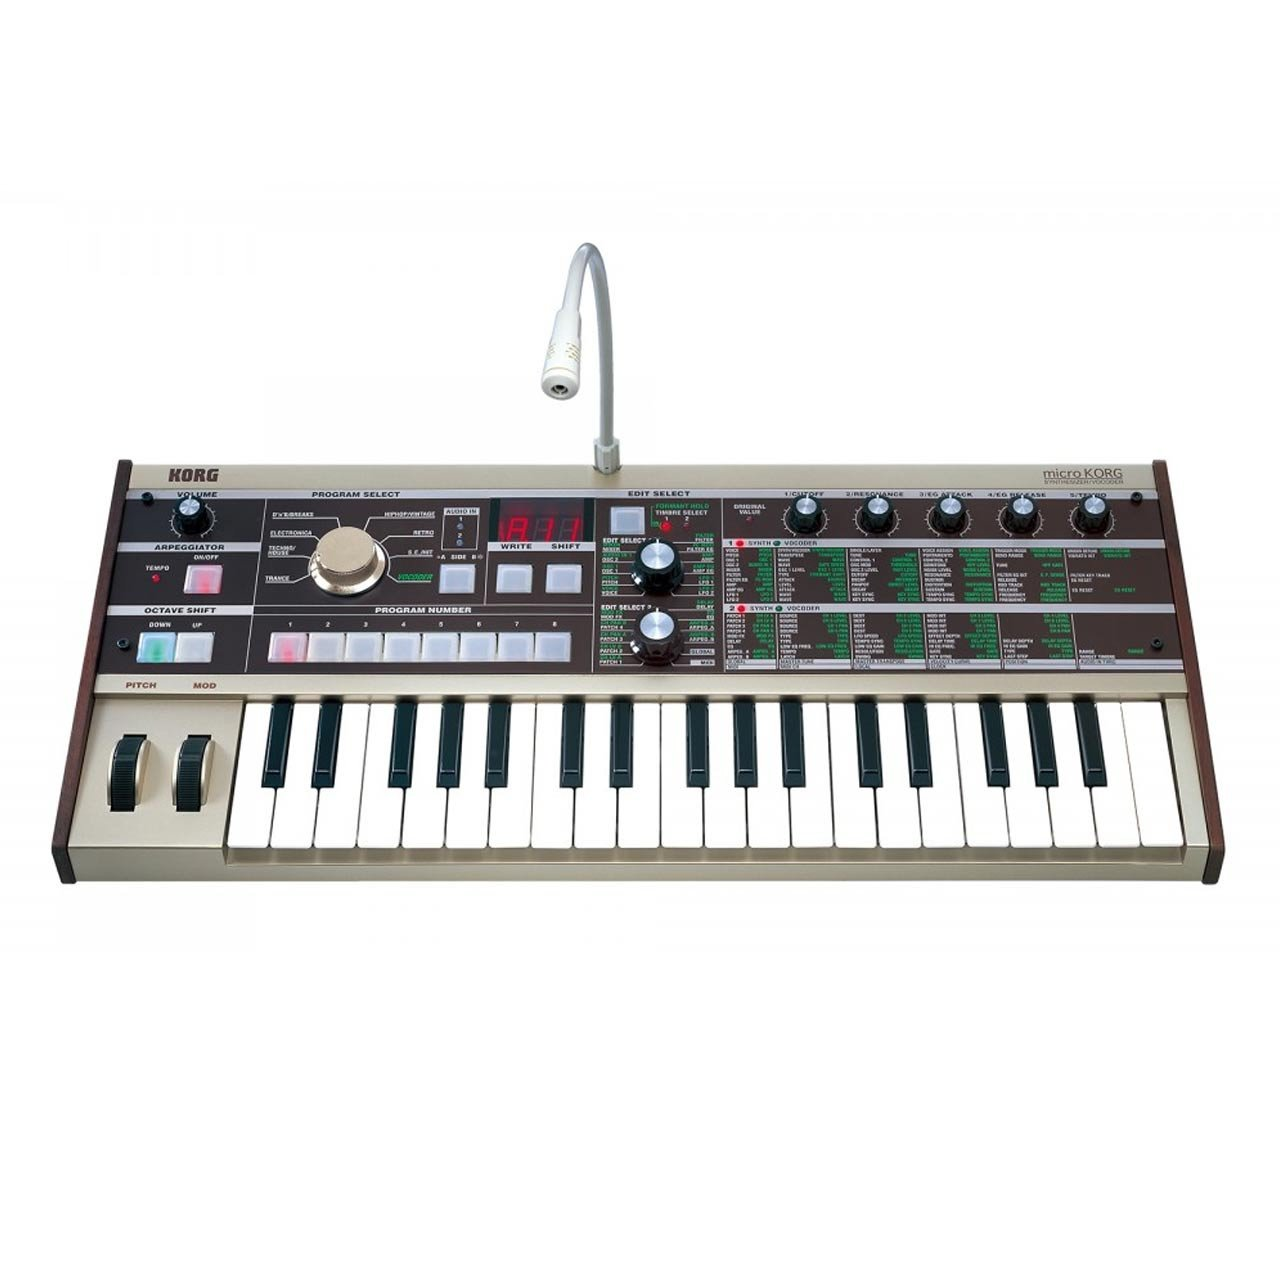 Korg MicroKORG Synthesizer Vocoder Keyboard